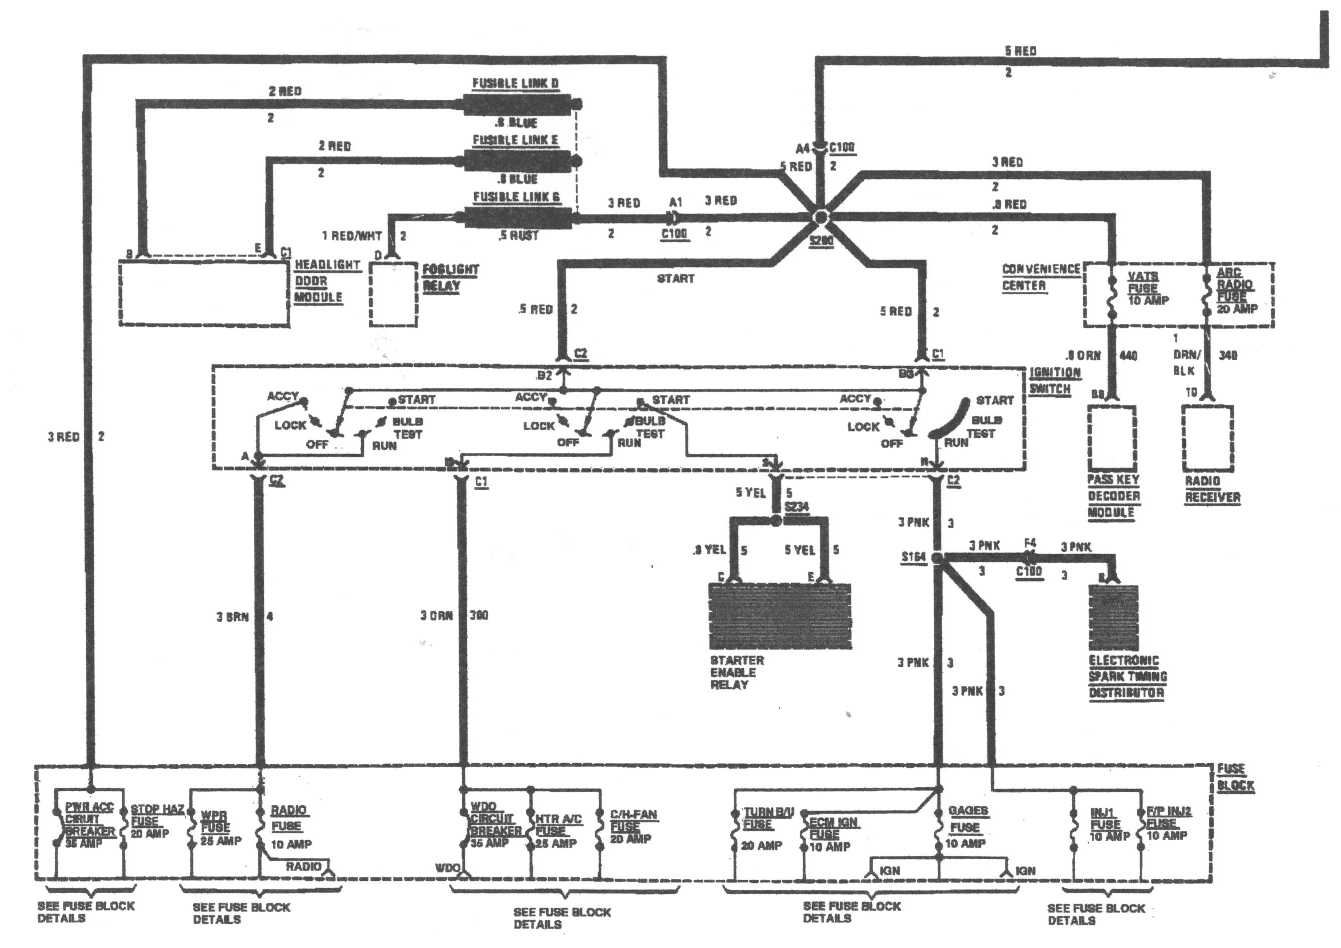 1980 Oldsmobile Ignition Wiring Diagram Car Diagrams 79 Camaro Rh Rujjiy Tripa Co 1995